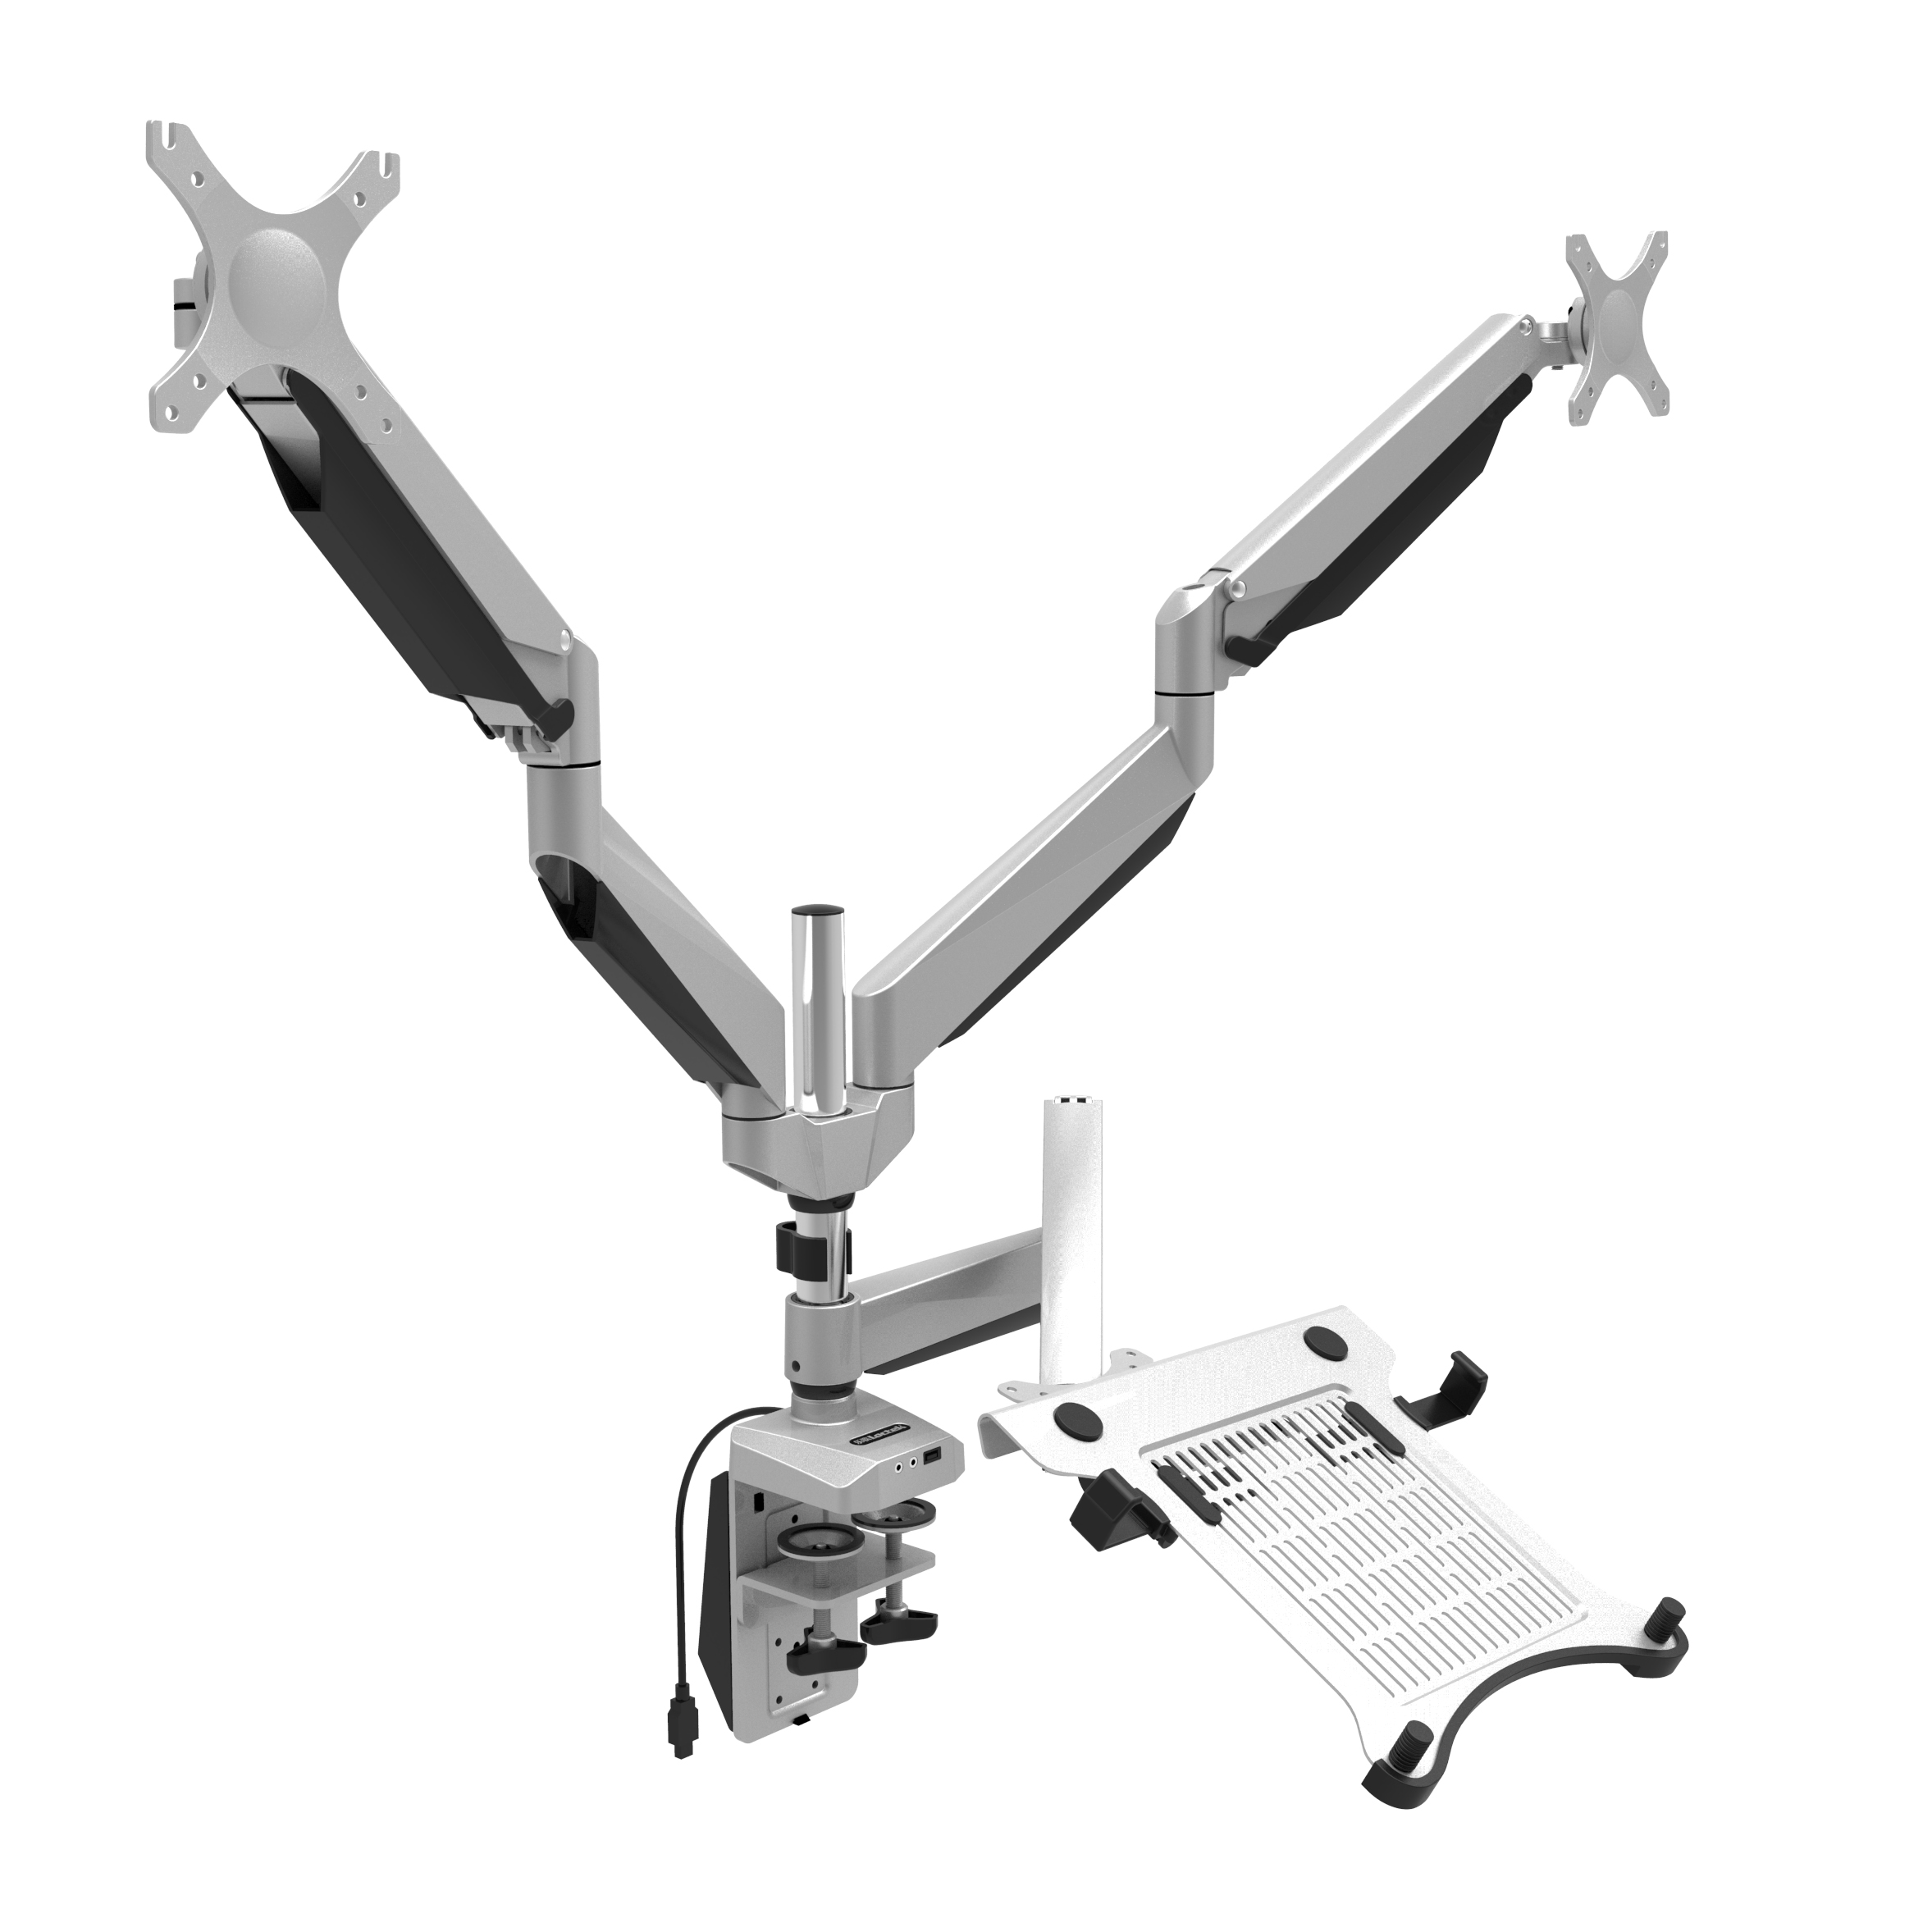 "LOCTEK D7TP SWIVEL TRIPLE ARM DESK LCD LAPTOP MOUNT MONITOR STAND FITS 10""-27"" COMPUTER SCREEN & 10.1""-17.3"" NOTEBOOK"